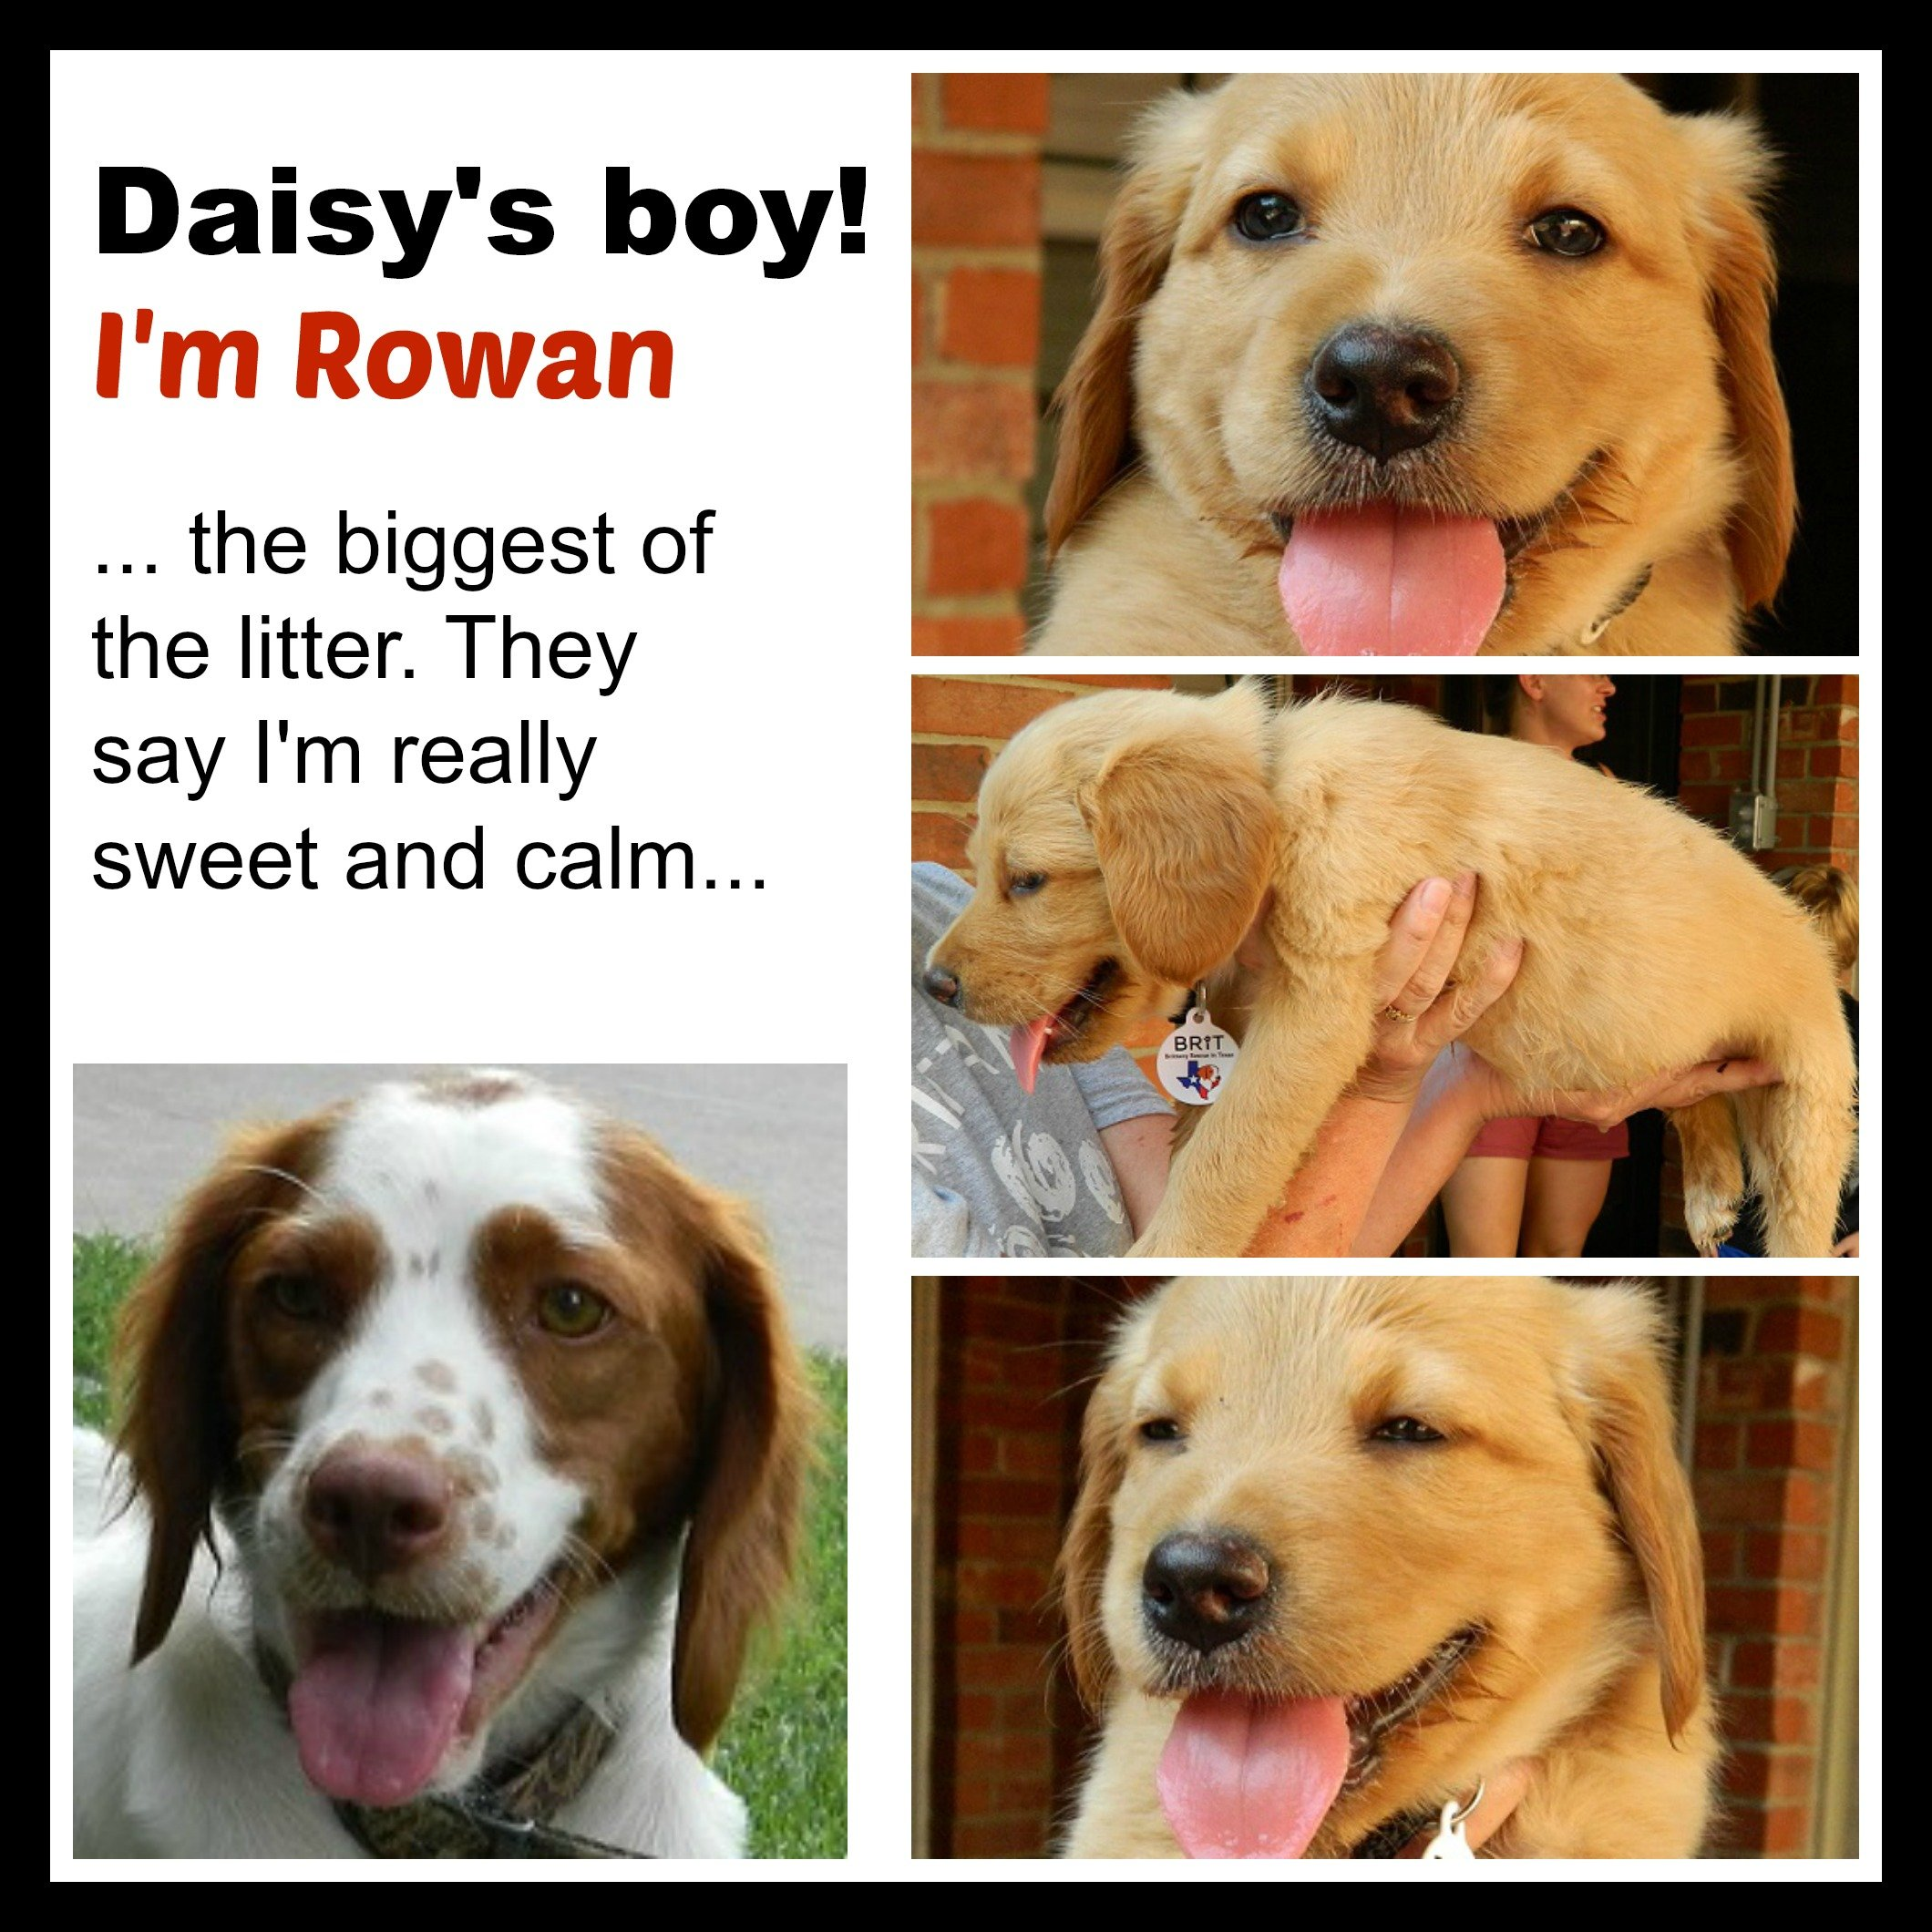 DAISY '14 - website puppy - Rowan  7-13-14